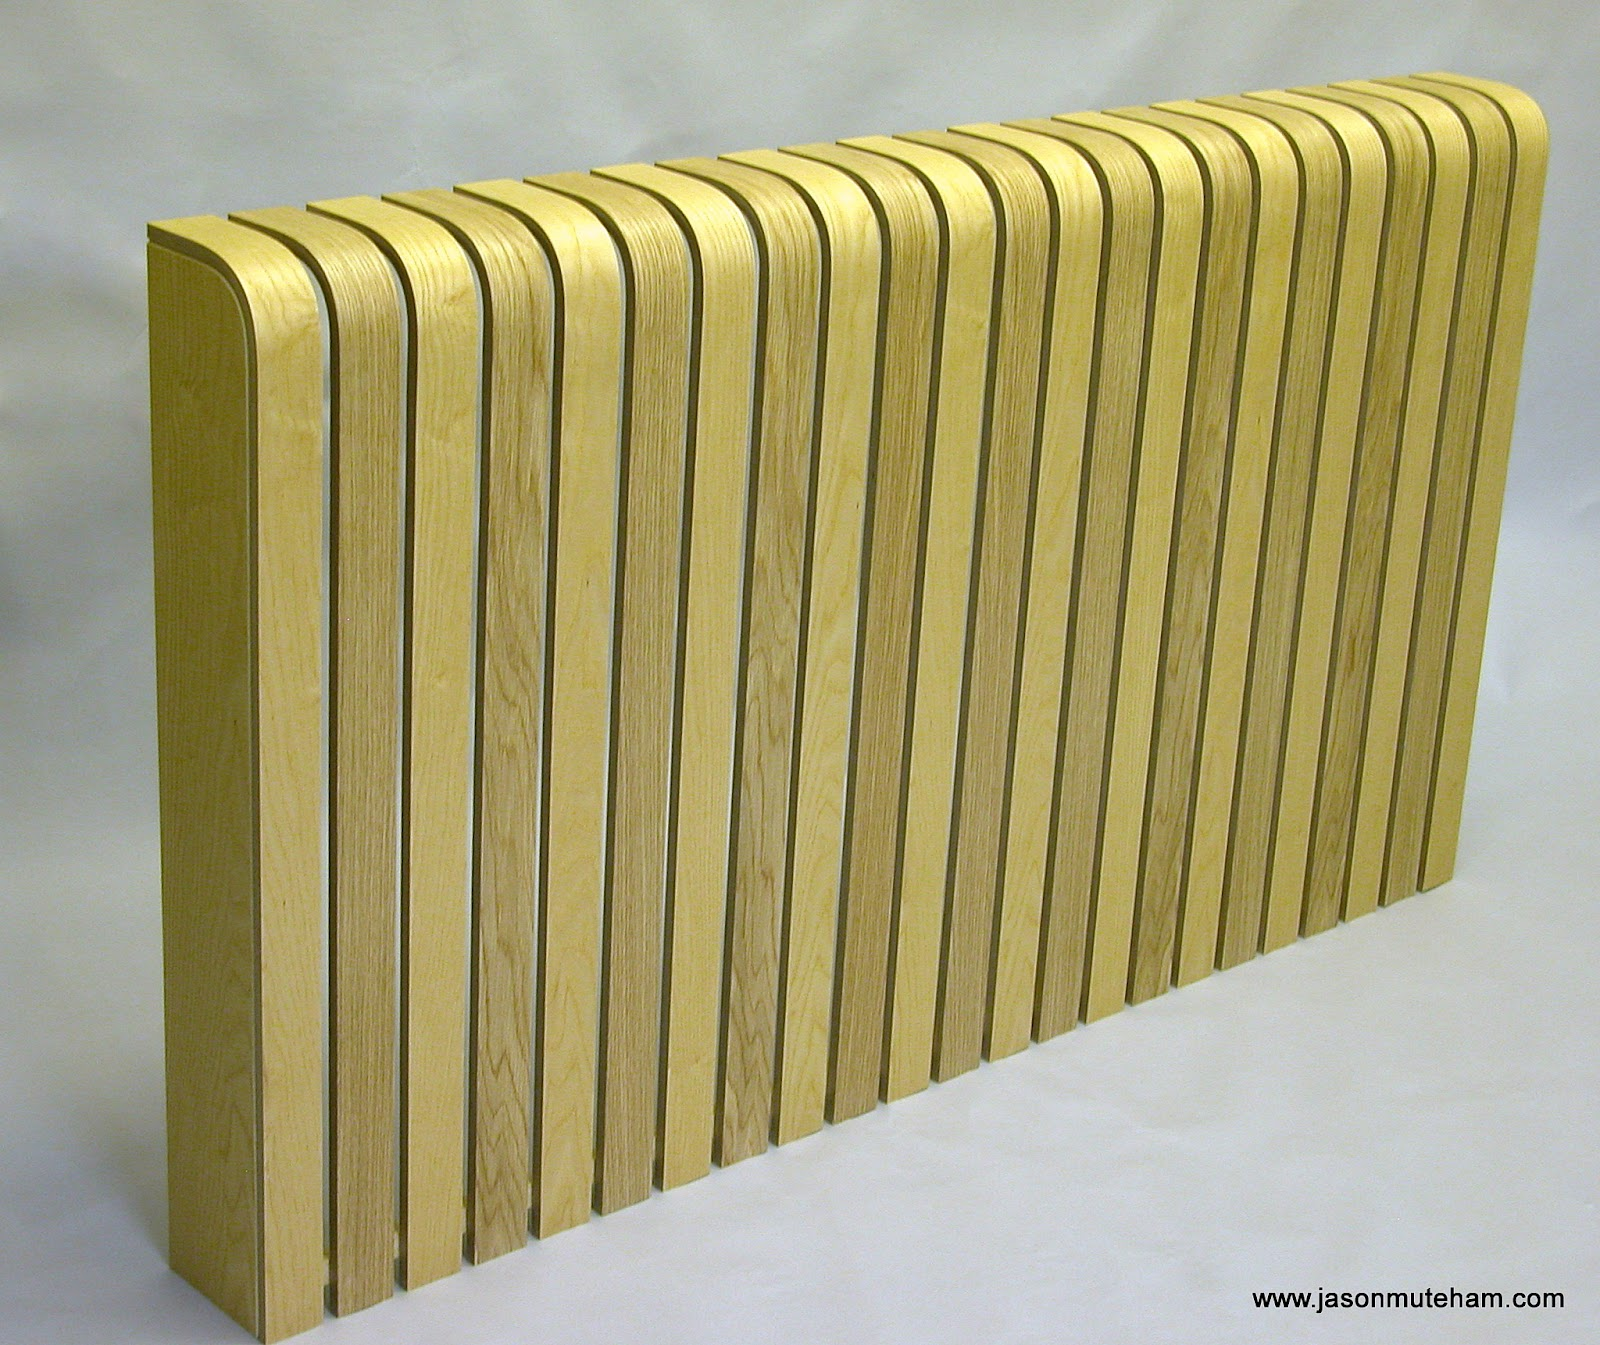 ... - Furniture Designer & Maker: A radiator cover thats a bit special